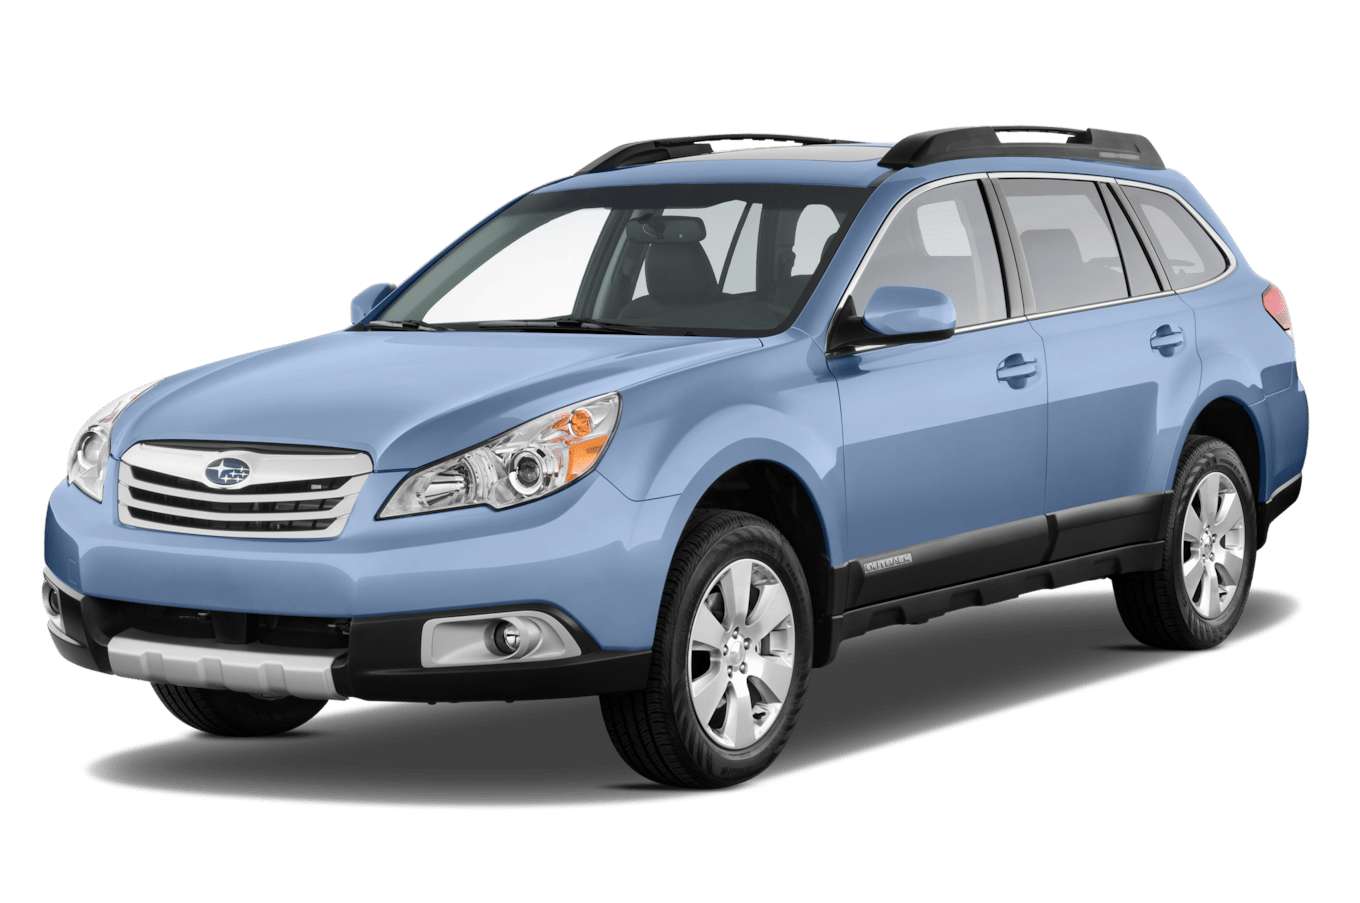 medium resolution of 2011 subaru outback reviews research outback prices specs wiring harness in addition 2016 subaru outback wagon further subaru